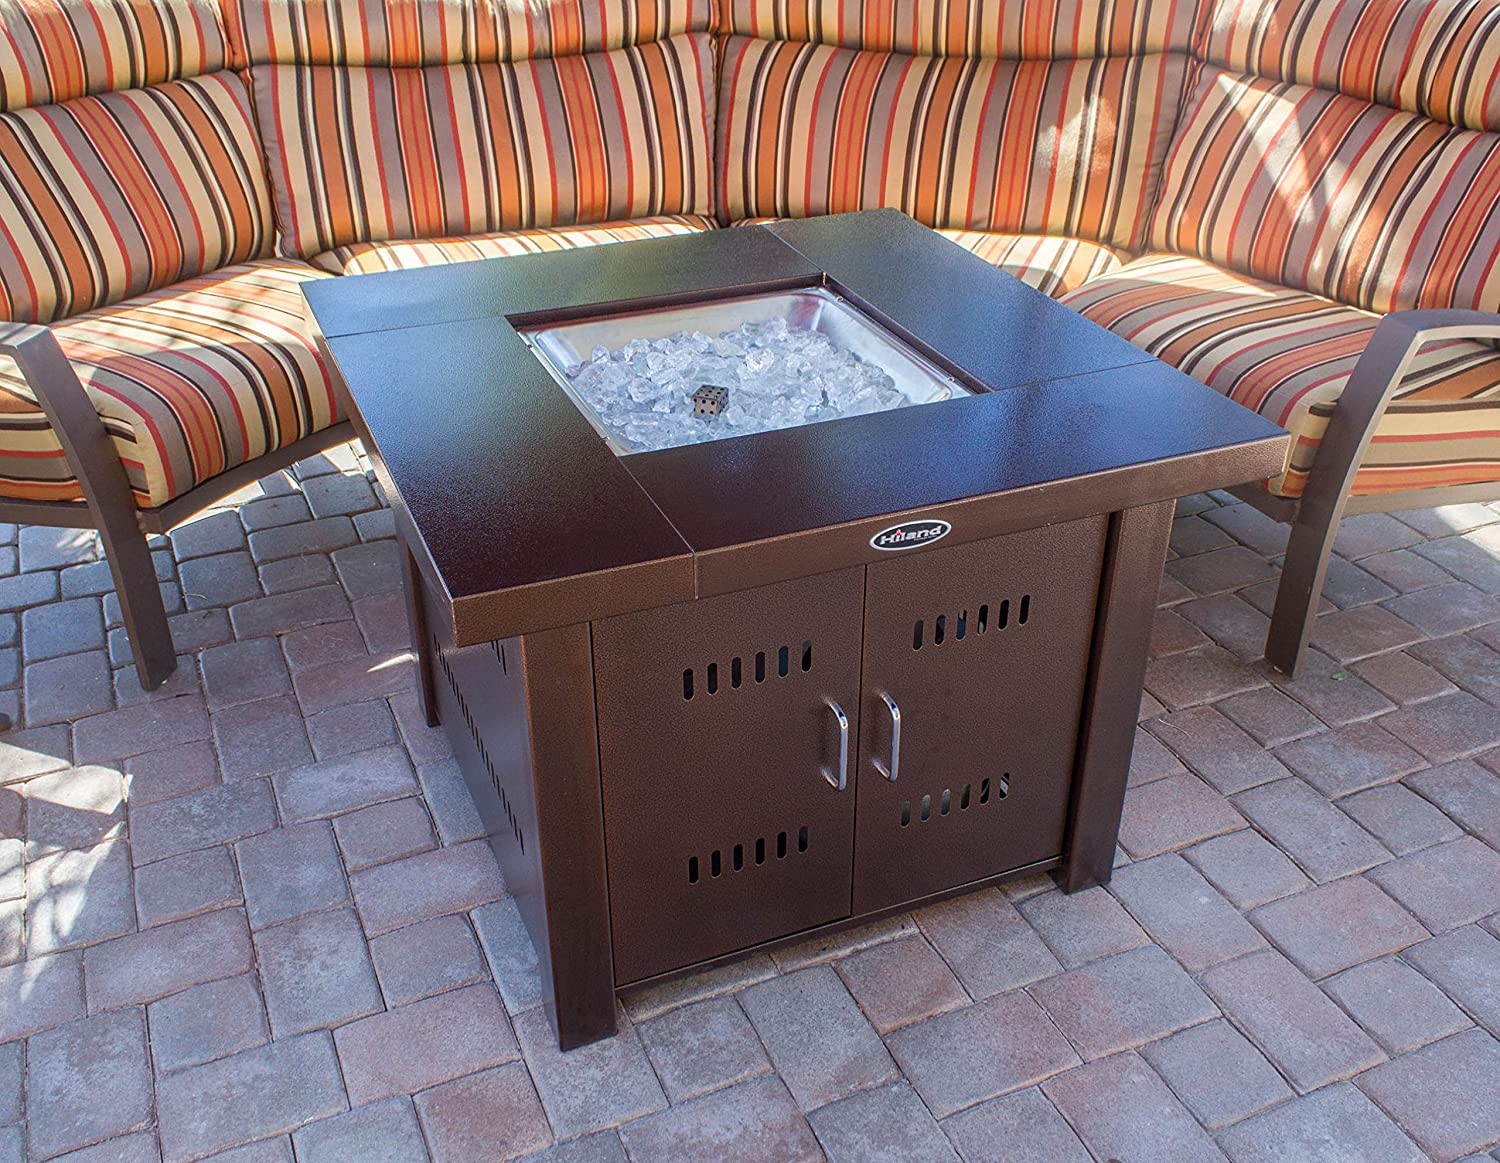 Top Ranked Outdoor Gas Fire Pits For 2019 Outdoor Fire Pits